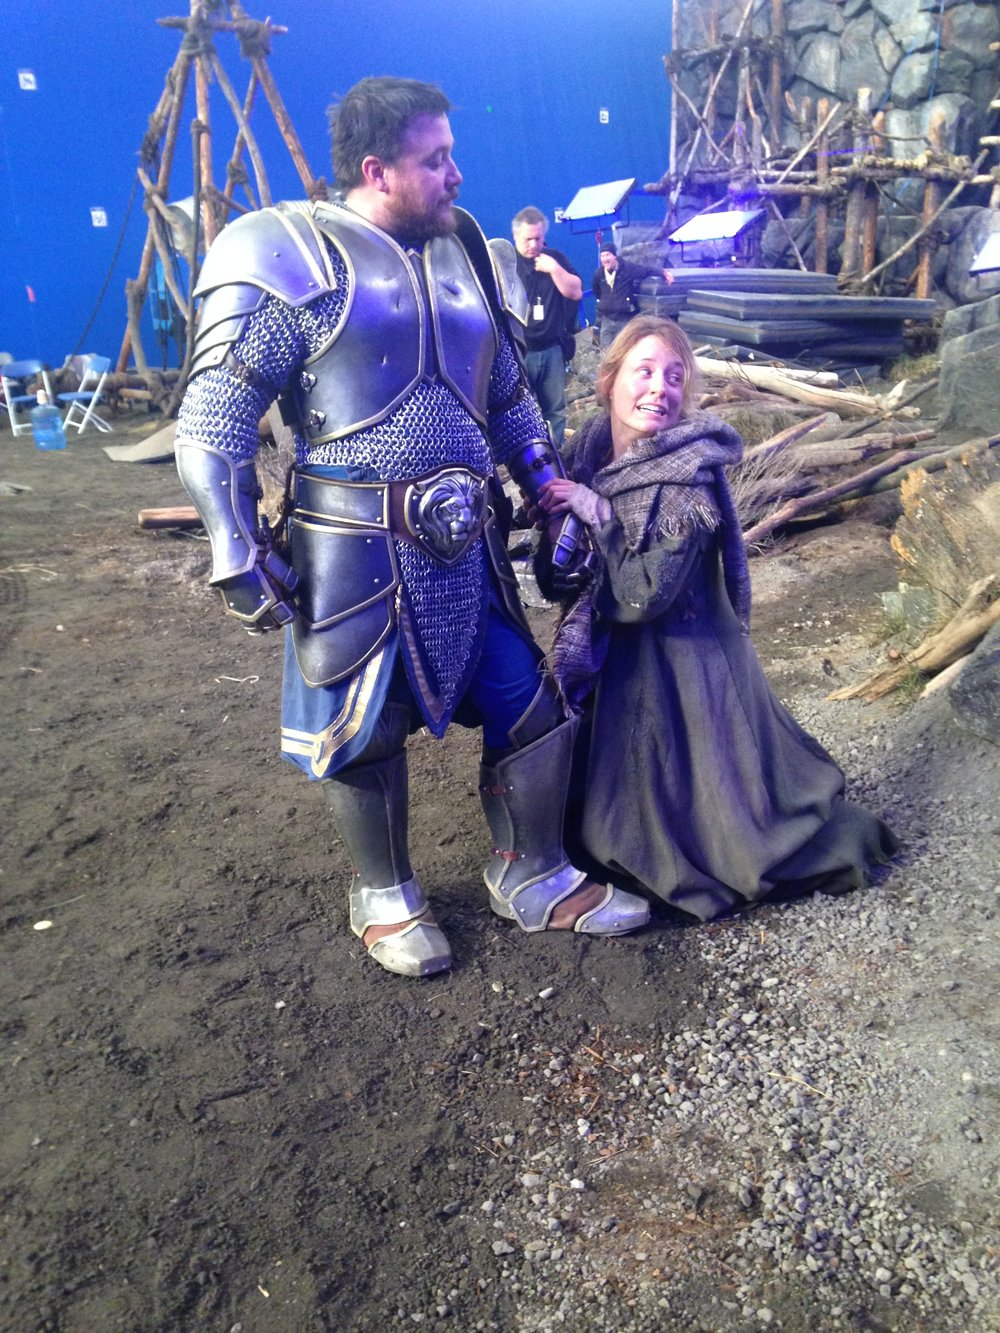 Warcraft   Cassandra did stunts in 2014 on the Movie Warcraft.